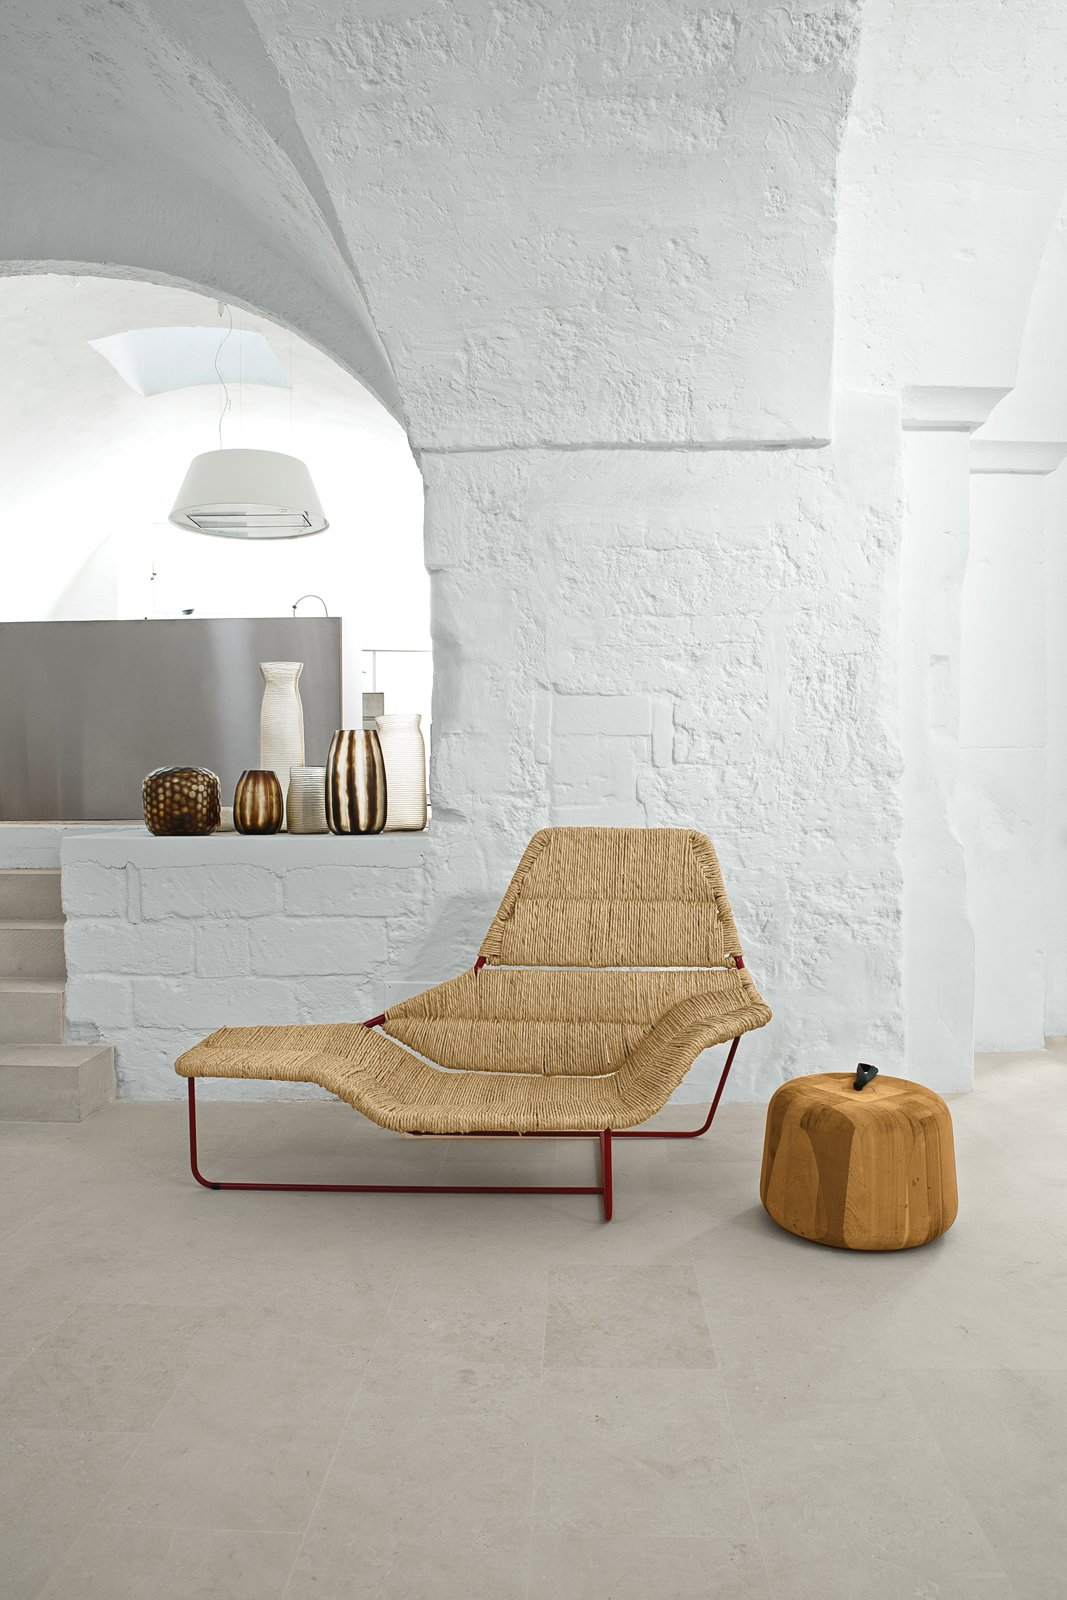 Serafini and Palomba's vacation home is a cavernous showcase for their own designs. In the living room, they created a one-off version of their Lama chaise longue, originally designed for Zanotta. The Zen Apple side table, also theirs, is from the Sen Line Collection by Exteta. The vases are by Guaxs.  Photo 2 of 8 in Modern Meets Ancient in a Renovated Italian Vacation Home